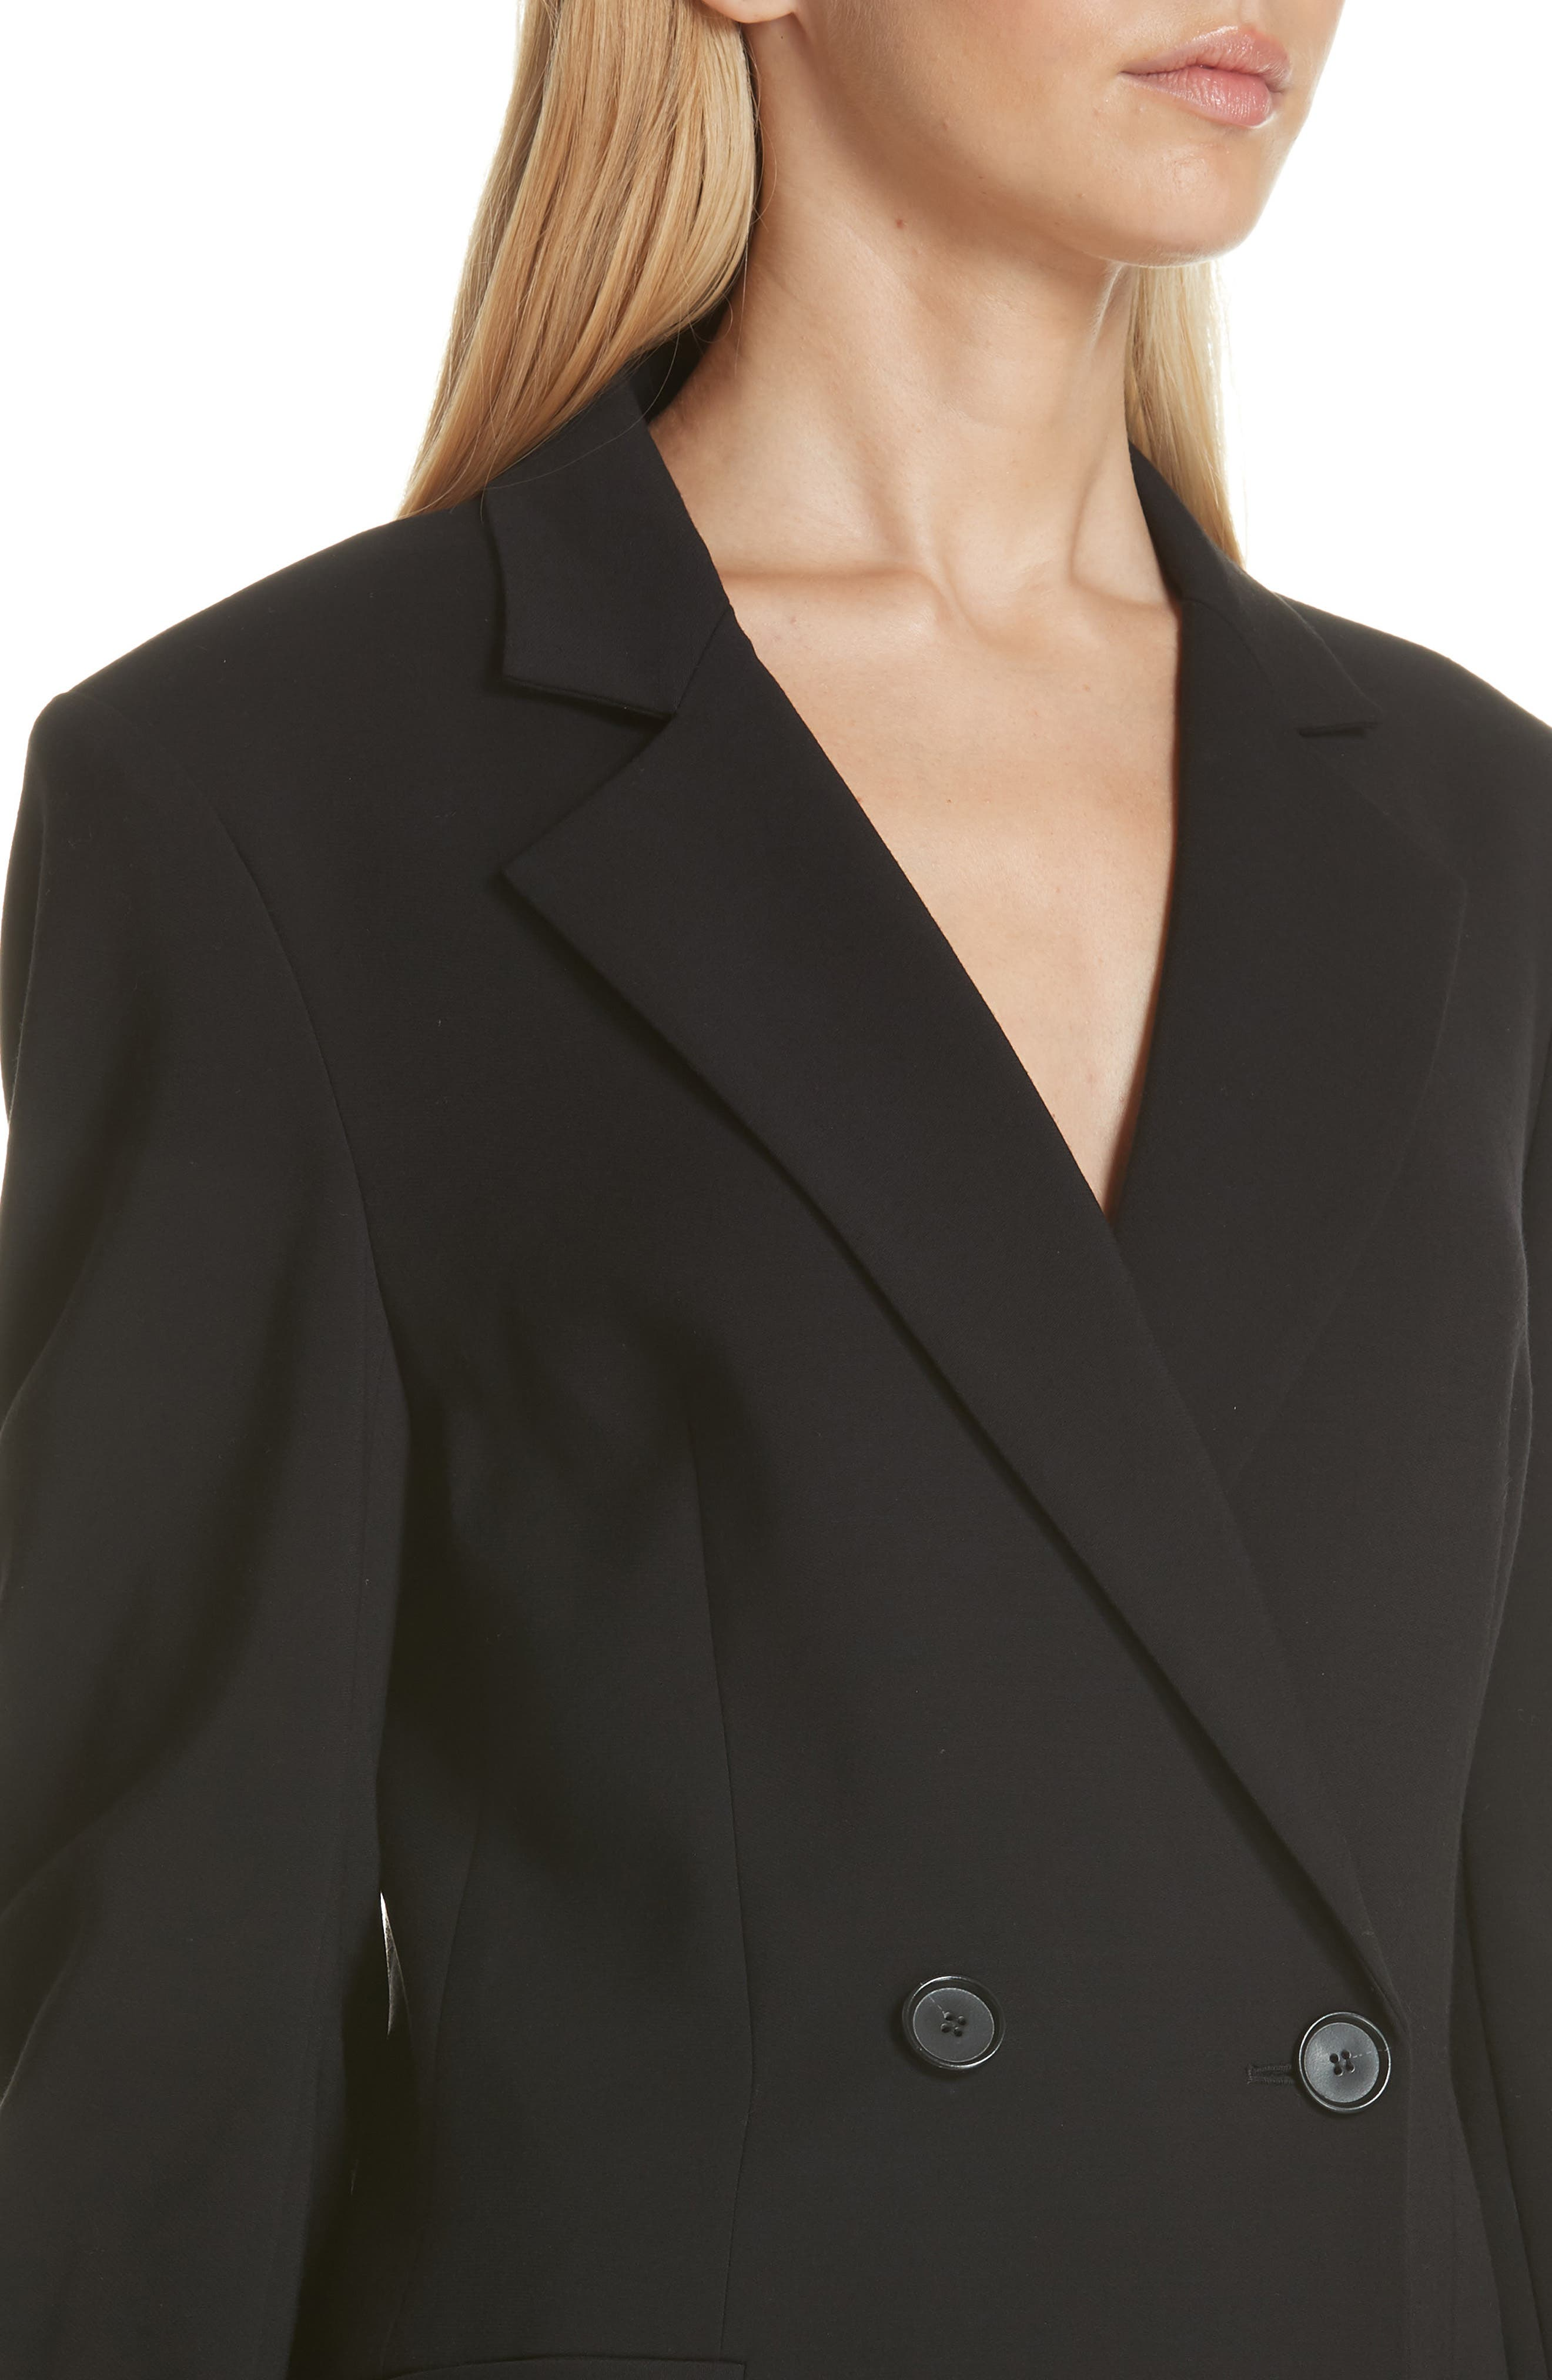 Ruched Sleeve Blazer,                             Alternate thumbnail 4, color,                             001